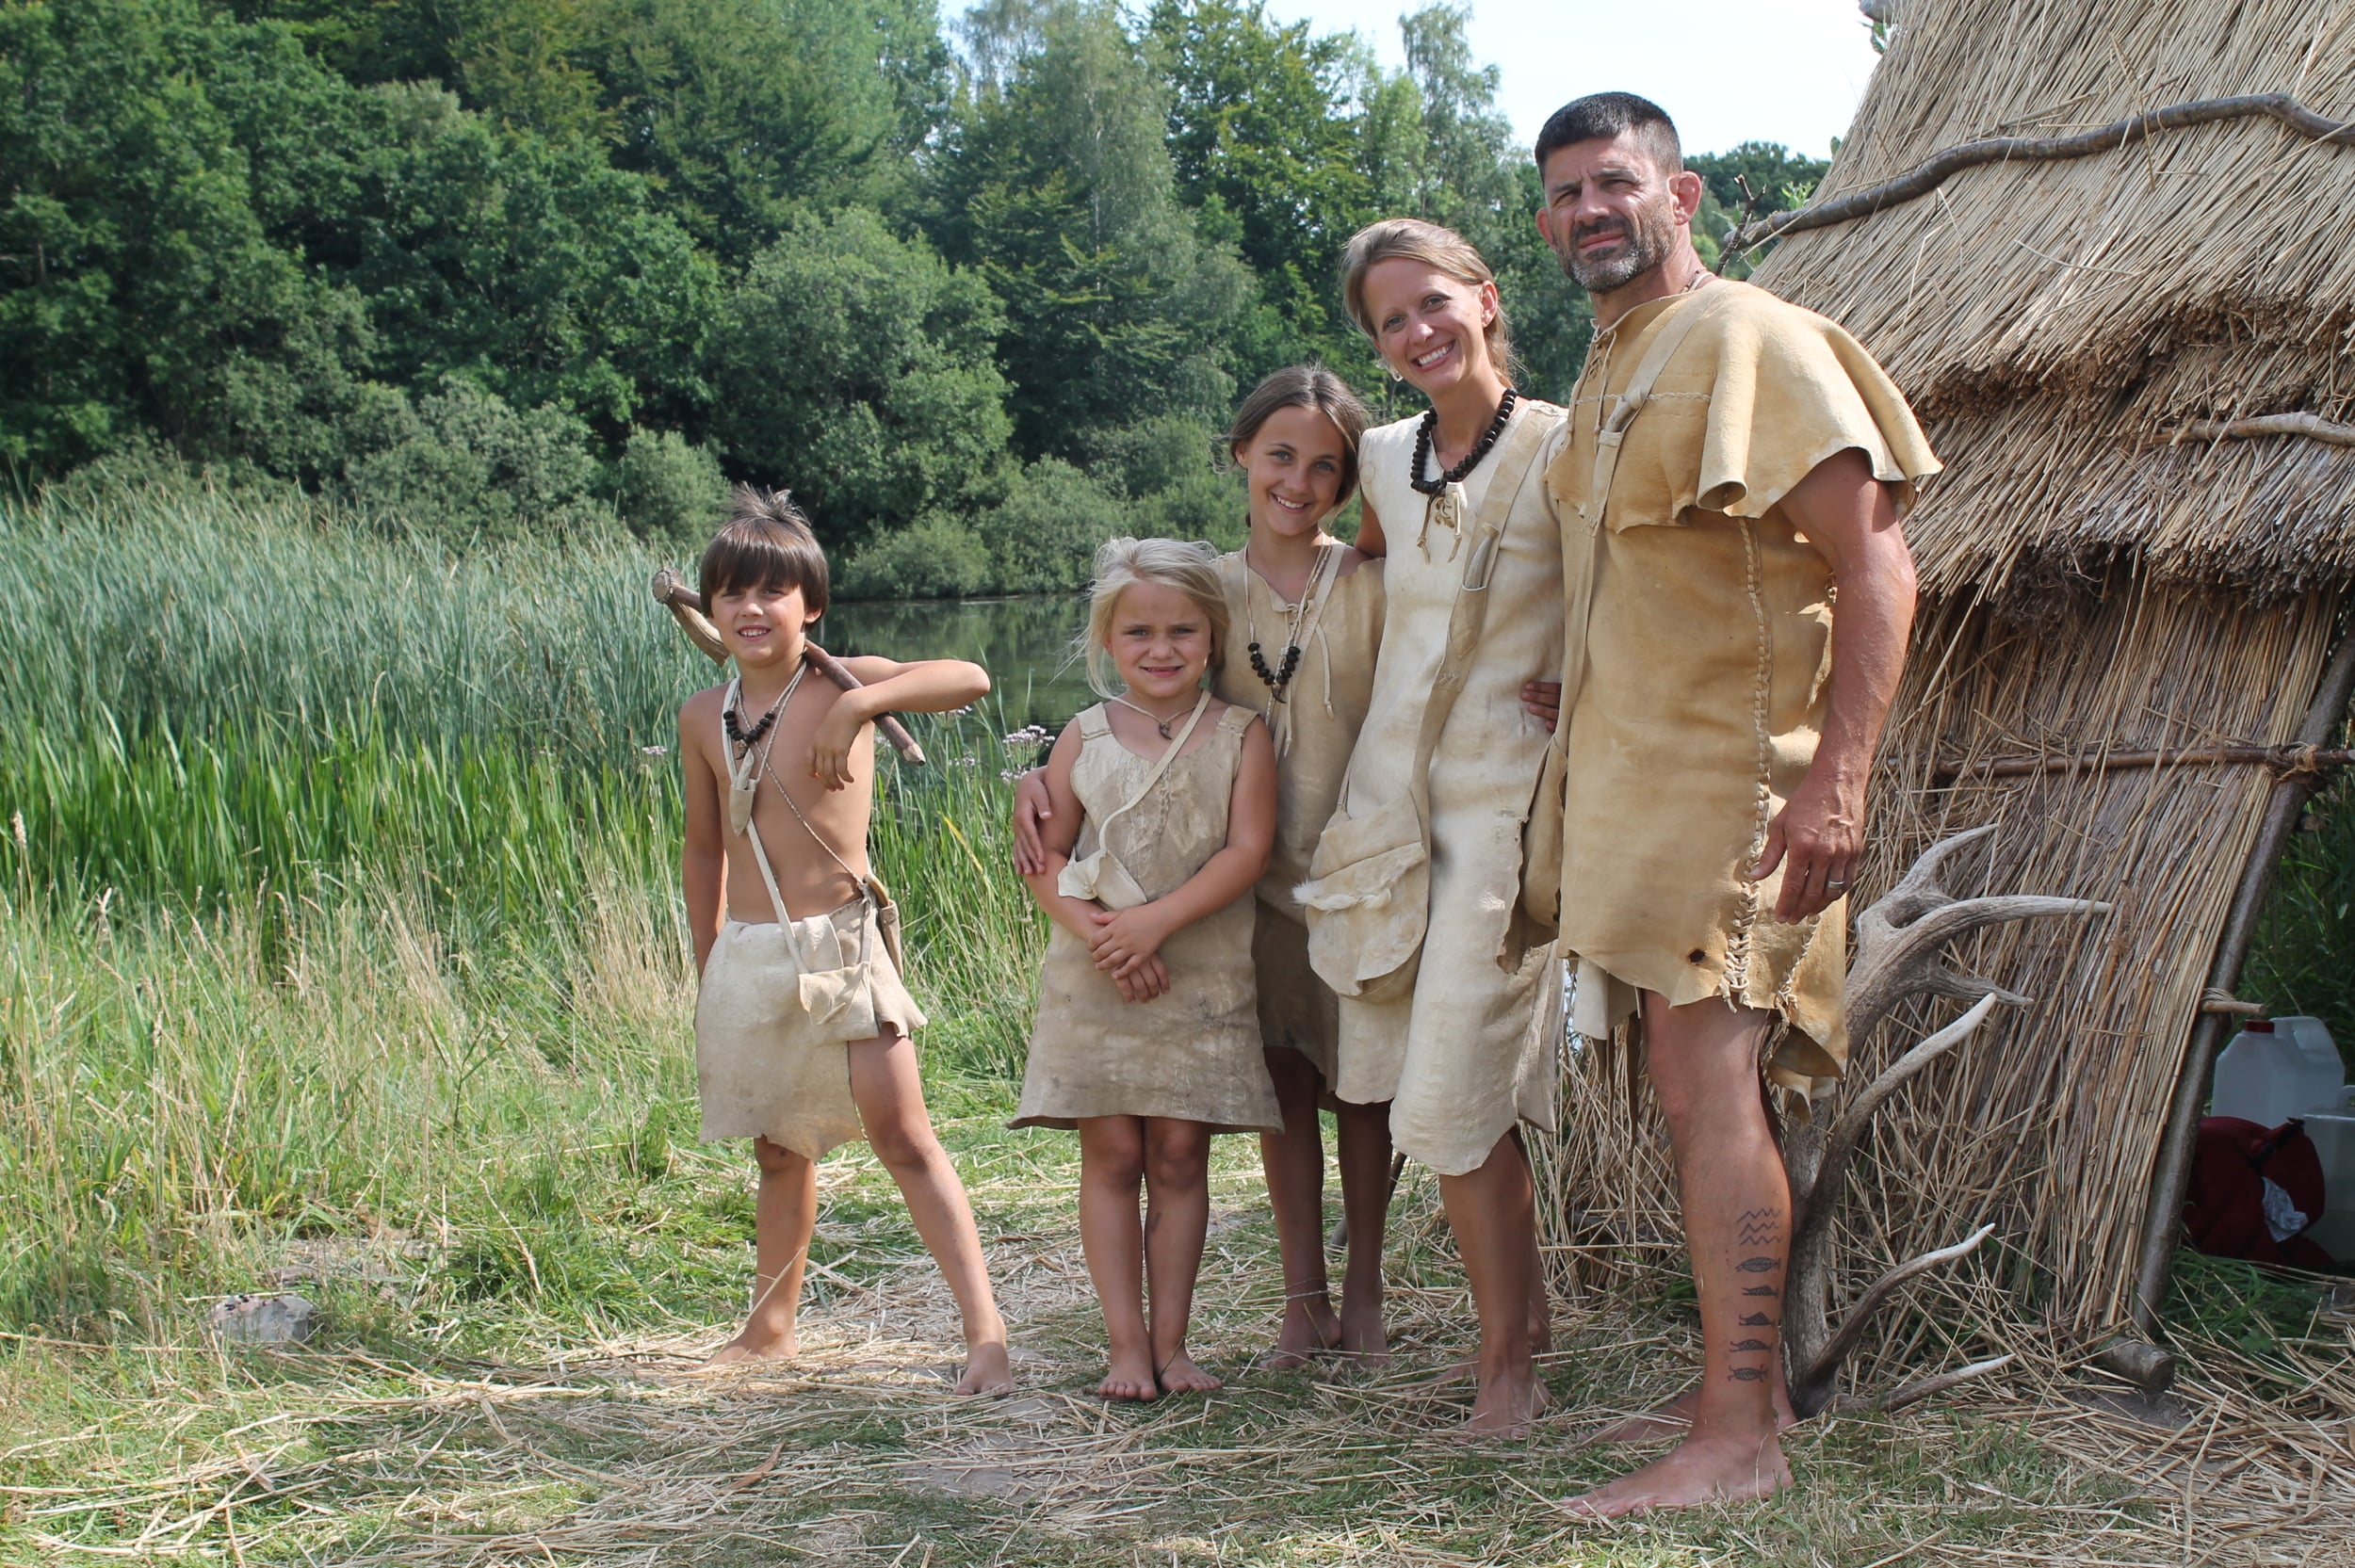 The Schindler family living in the stone age village: Lejre, Denmark. Dr. Schindler made all the clothing and primitive tools.